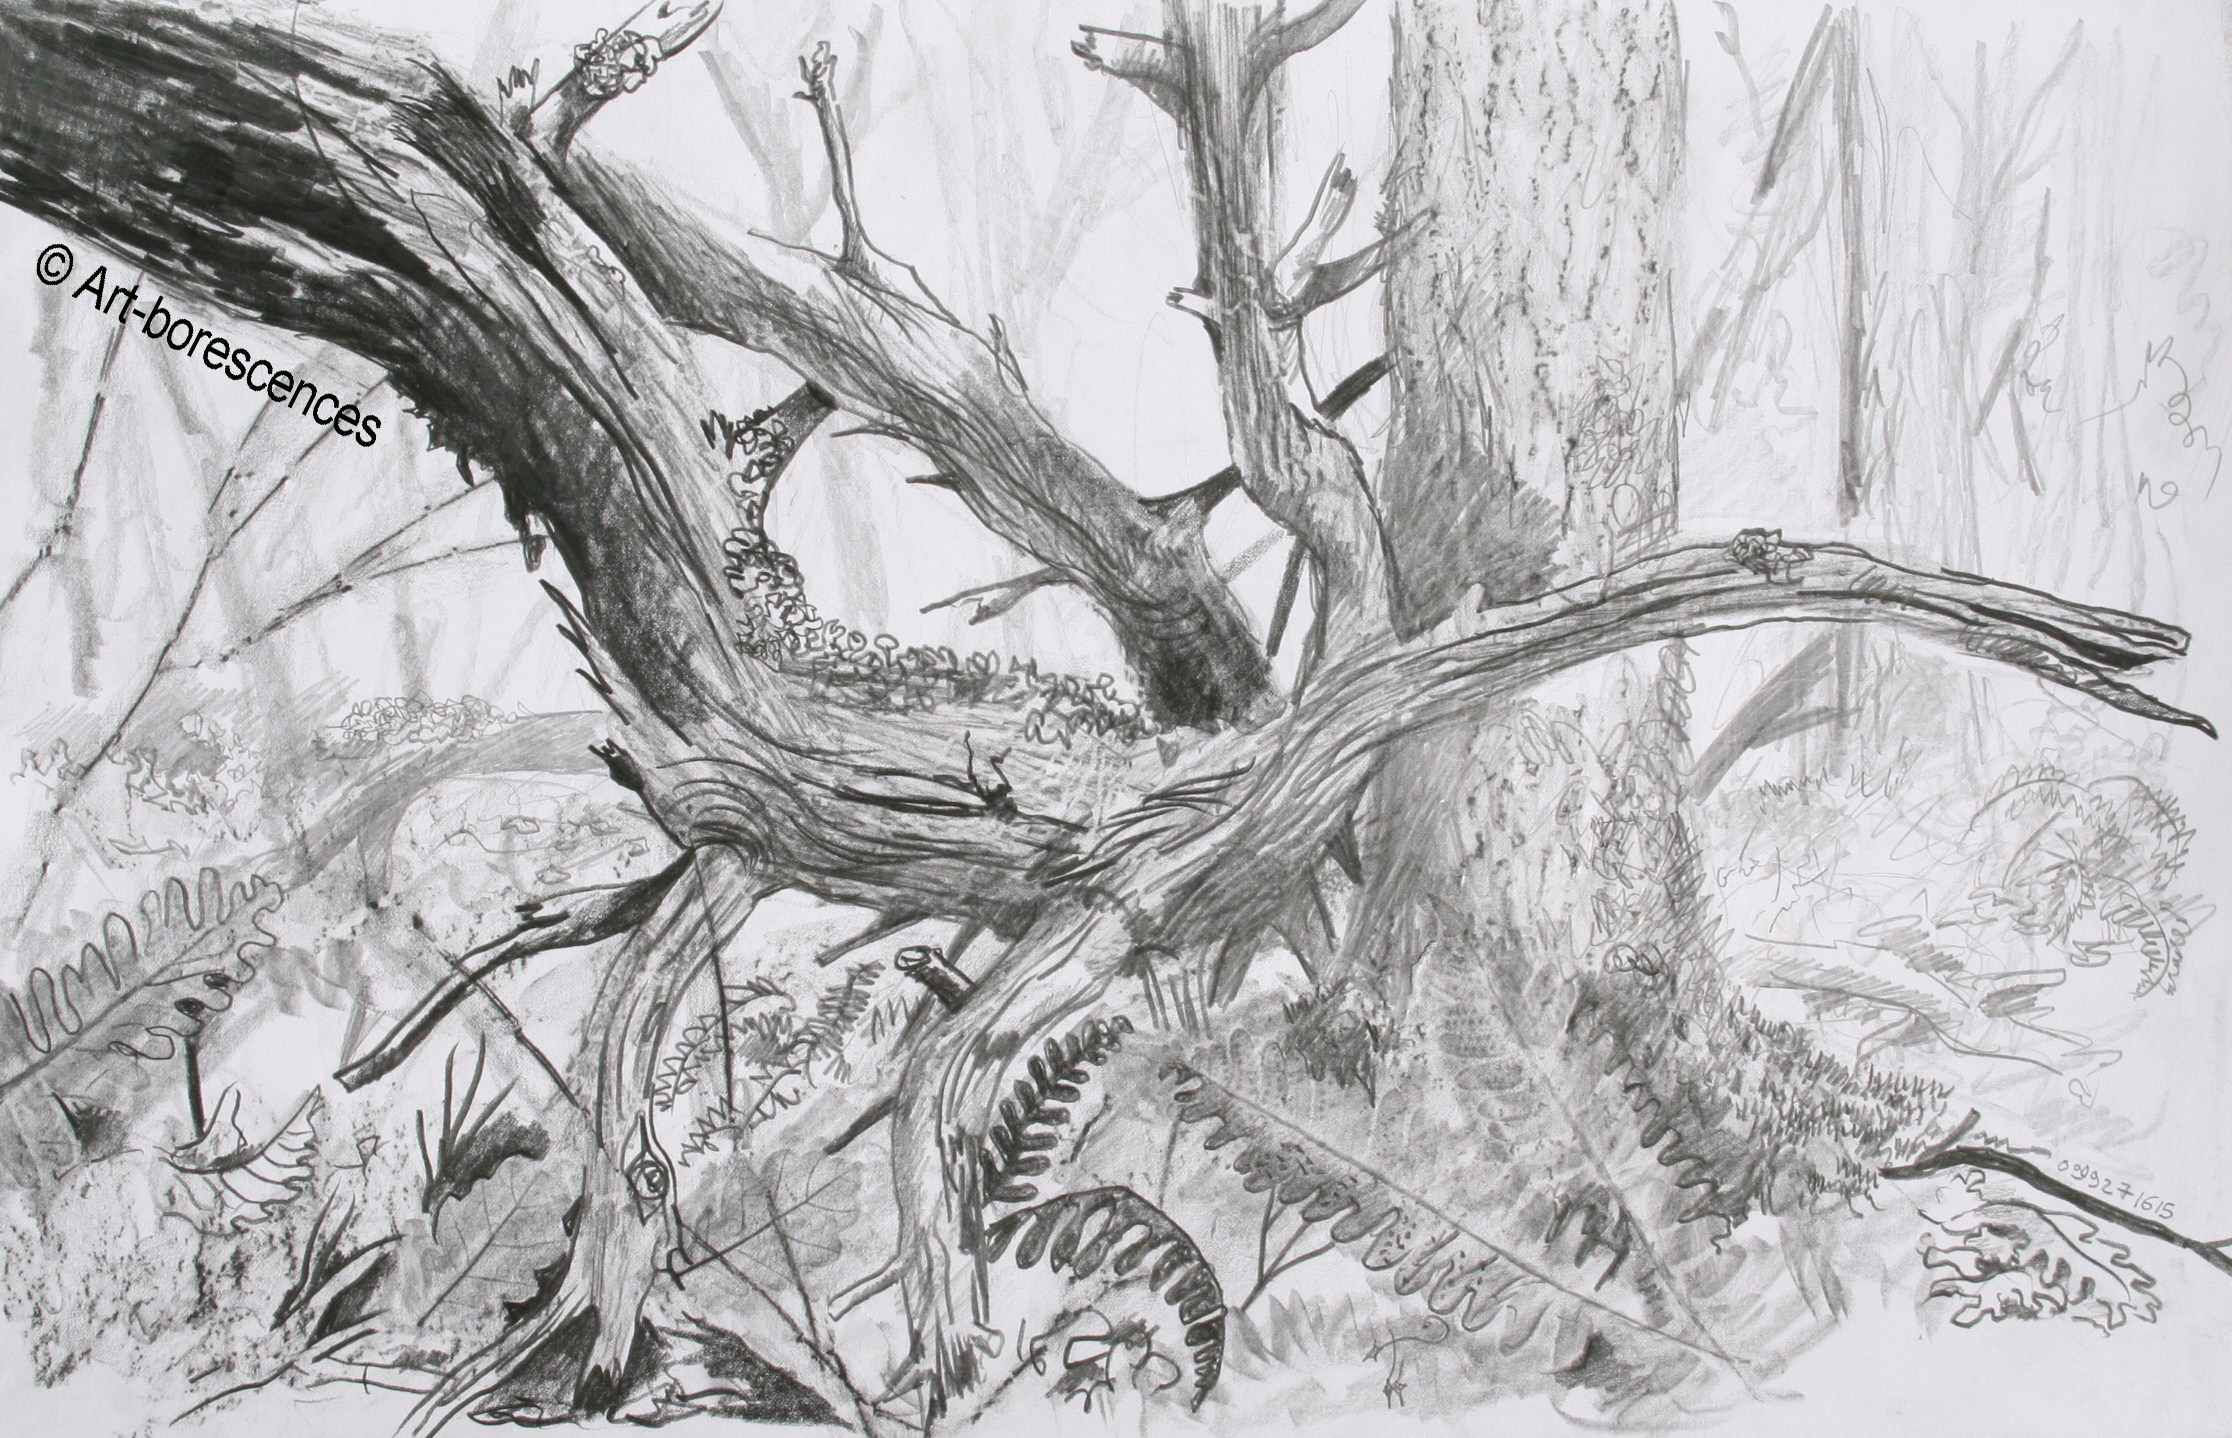 Dessins mine graphite art borescences arbres - Dessin branche d arbre ...